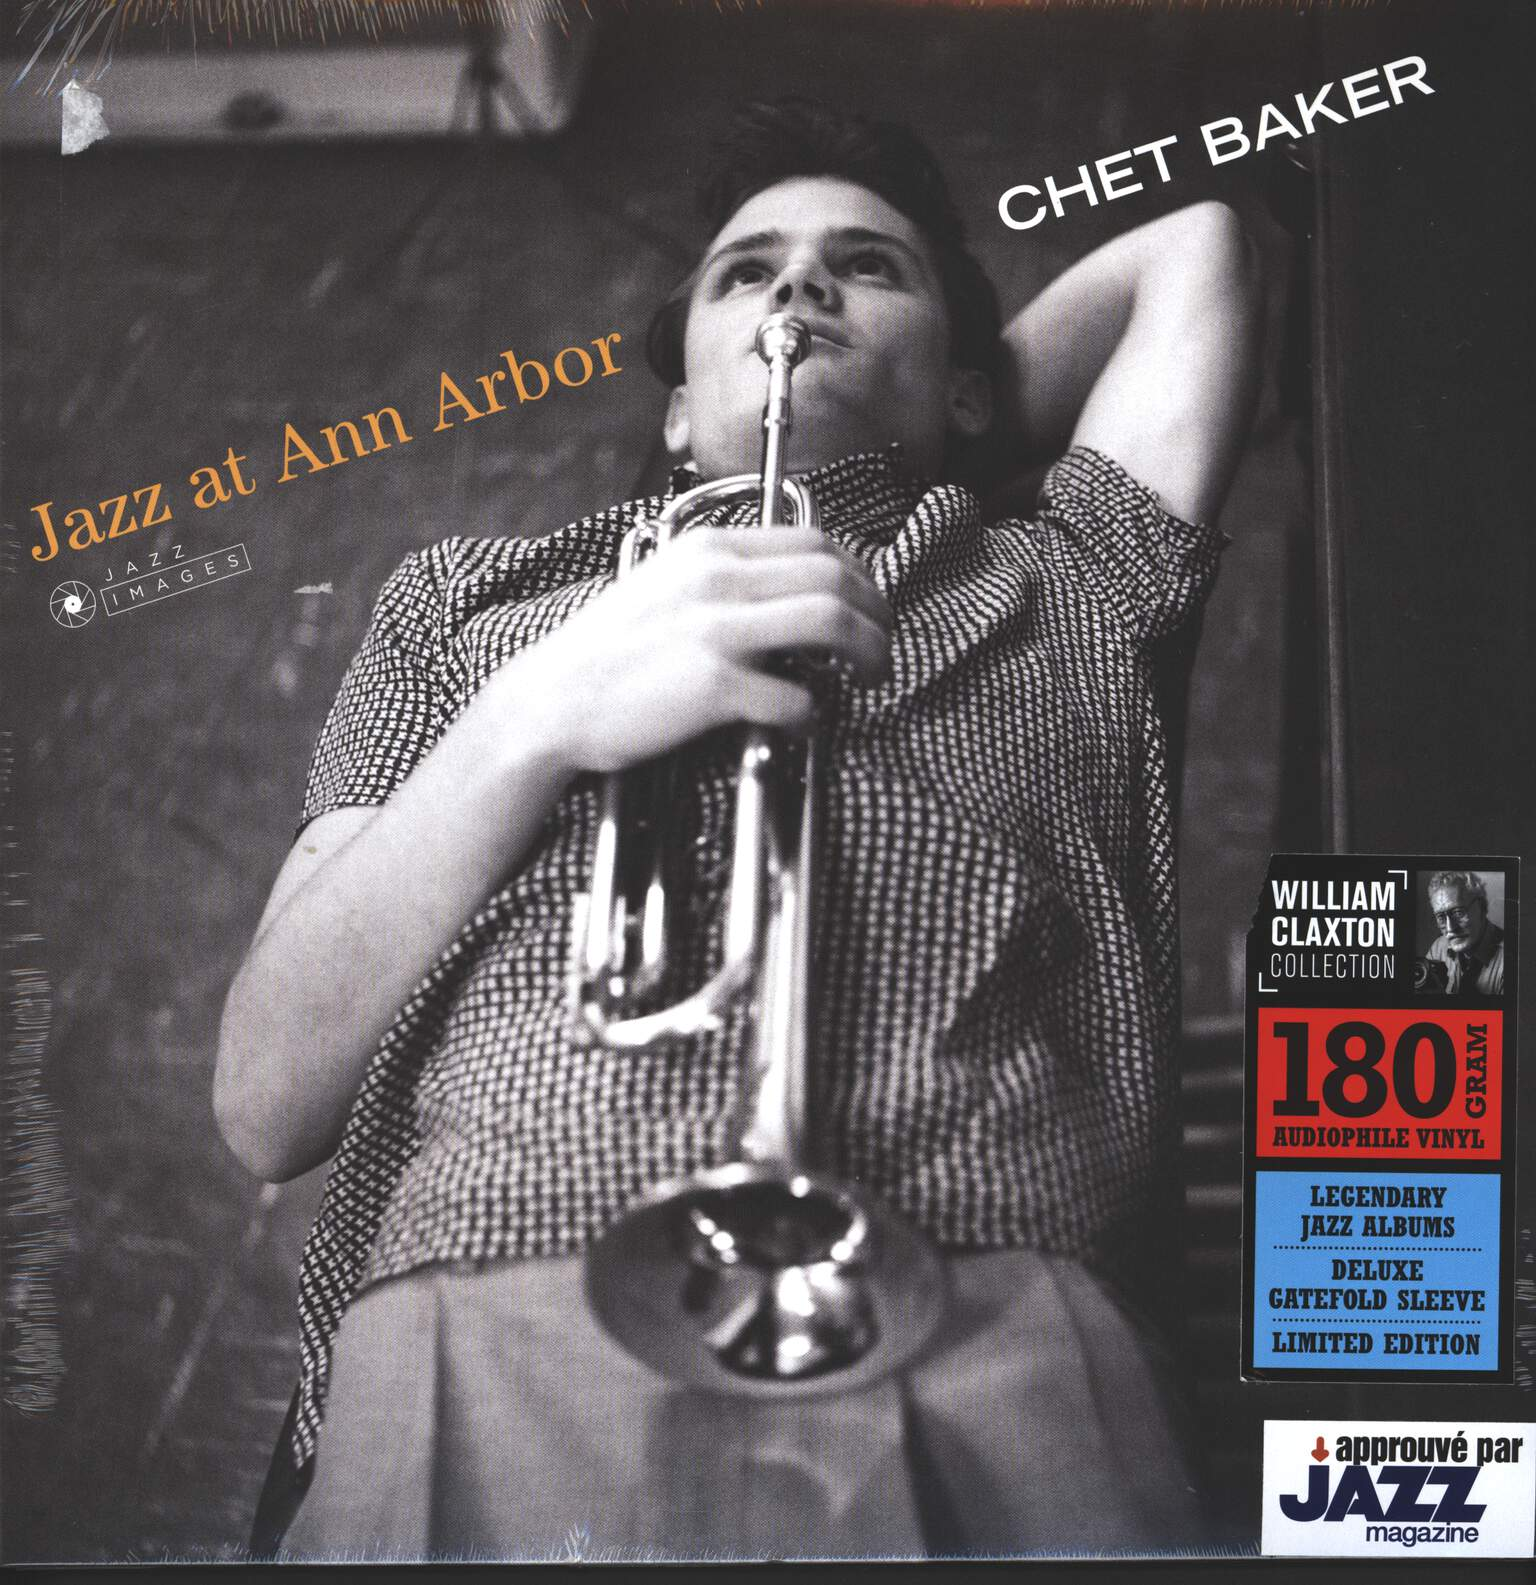 Chet Baker: Jazz at Ann Arbor, 1×LP (Vinyl)